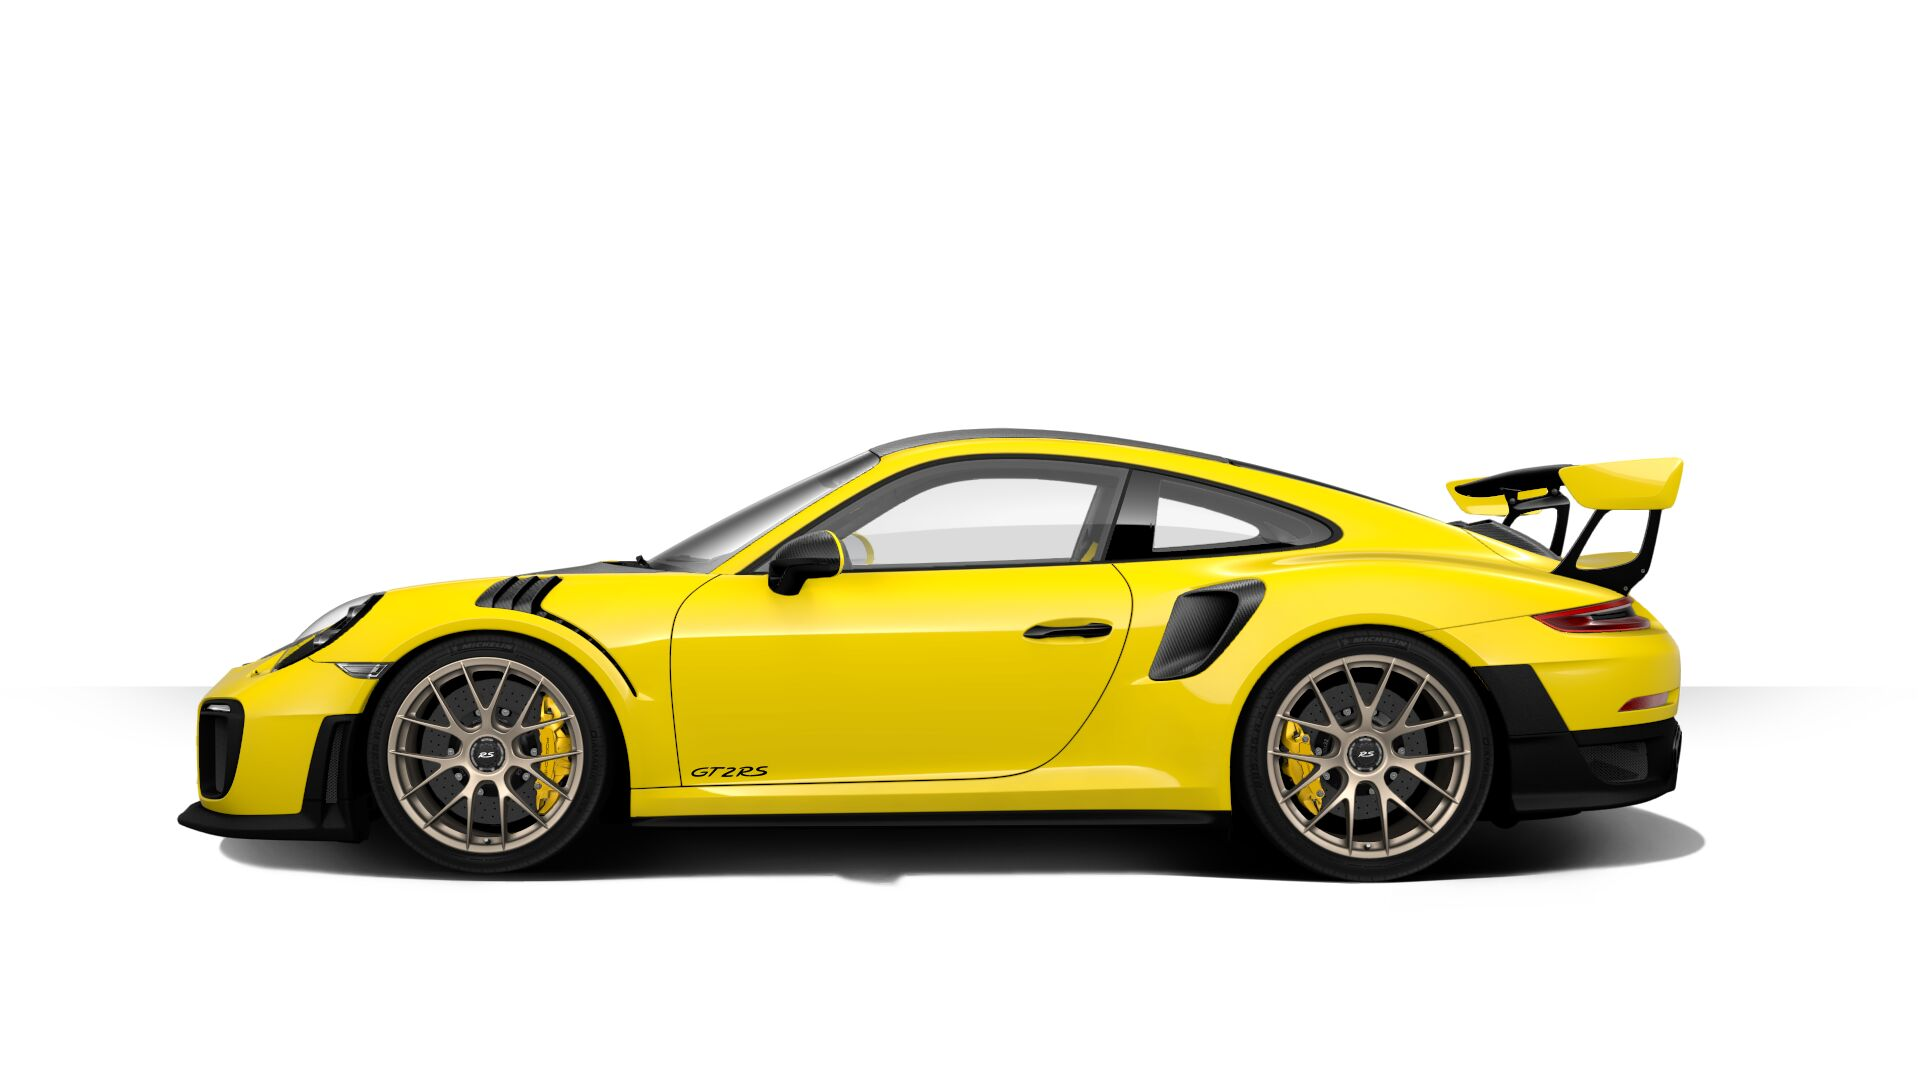 Racing-Yellow-Porsche-911-GT2-RS-3 Cozy Porsche 911 Gt2 Rs Wallpaper Cars Trend